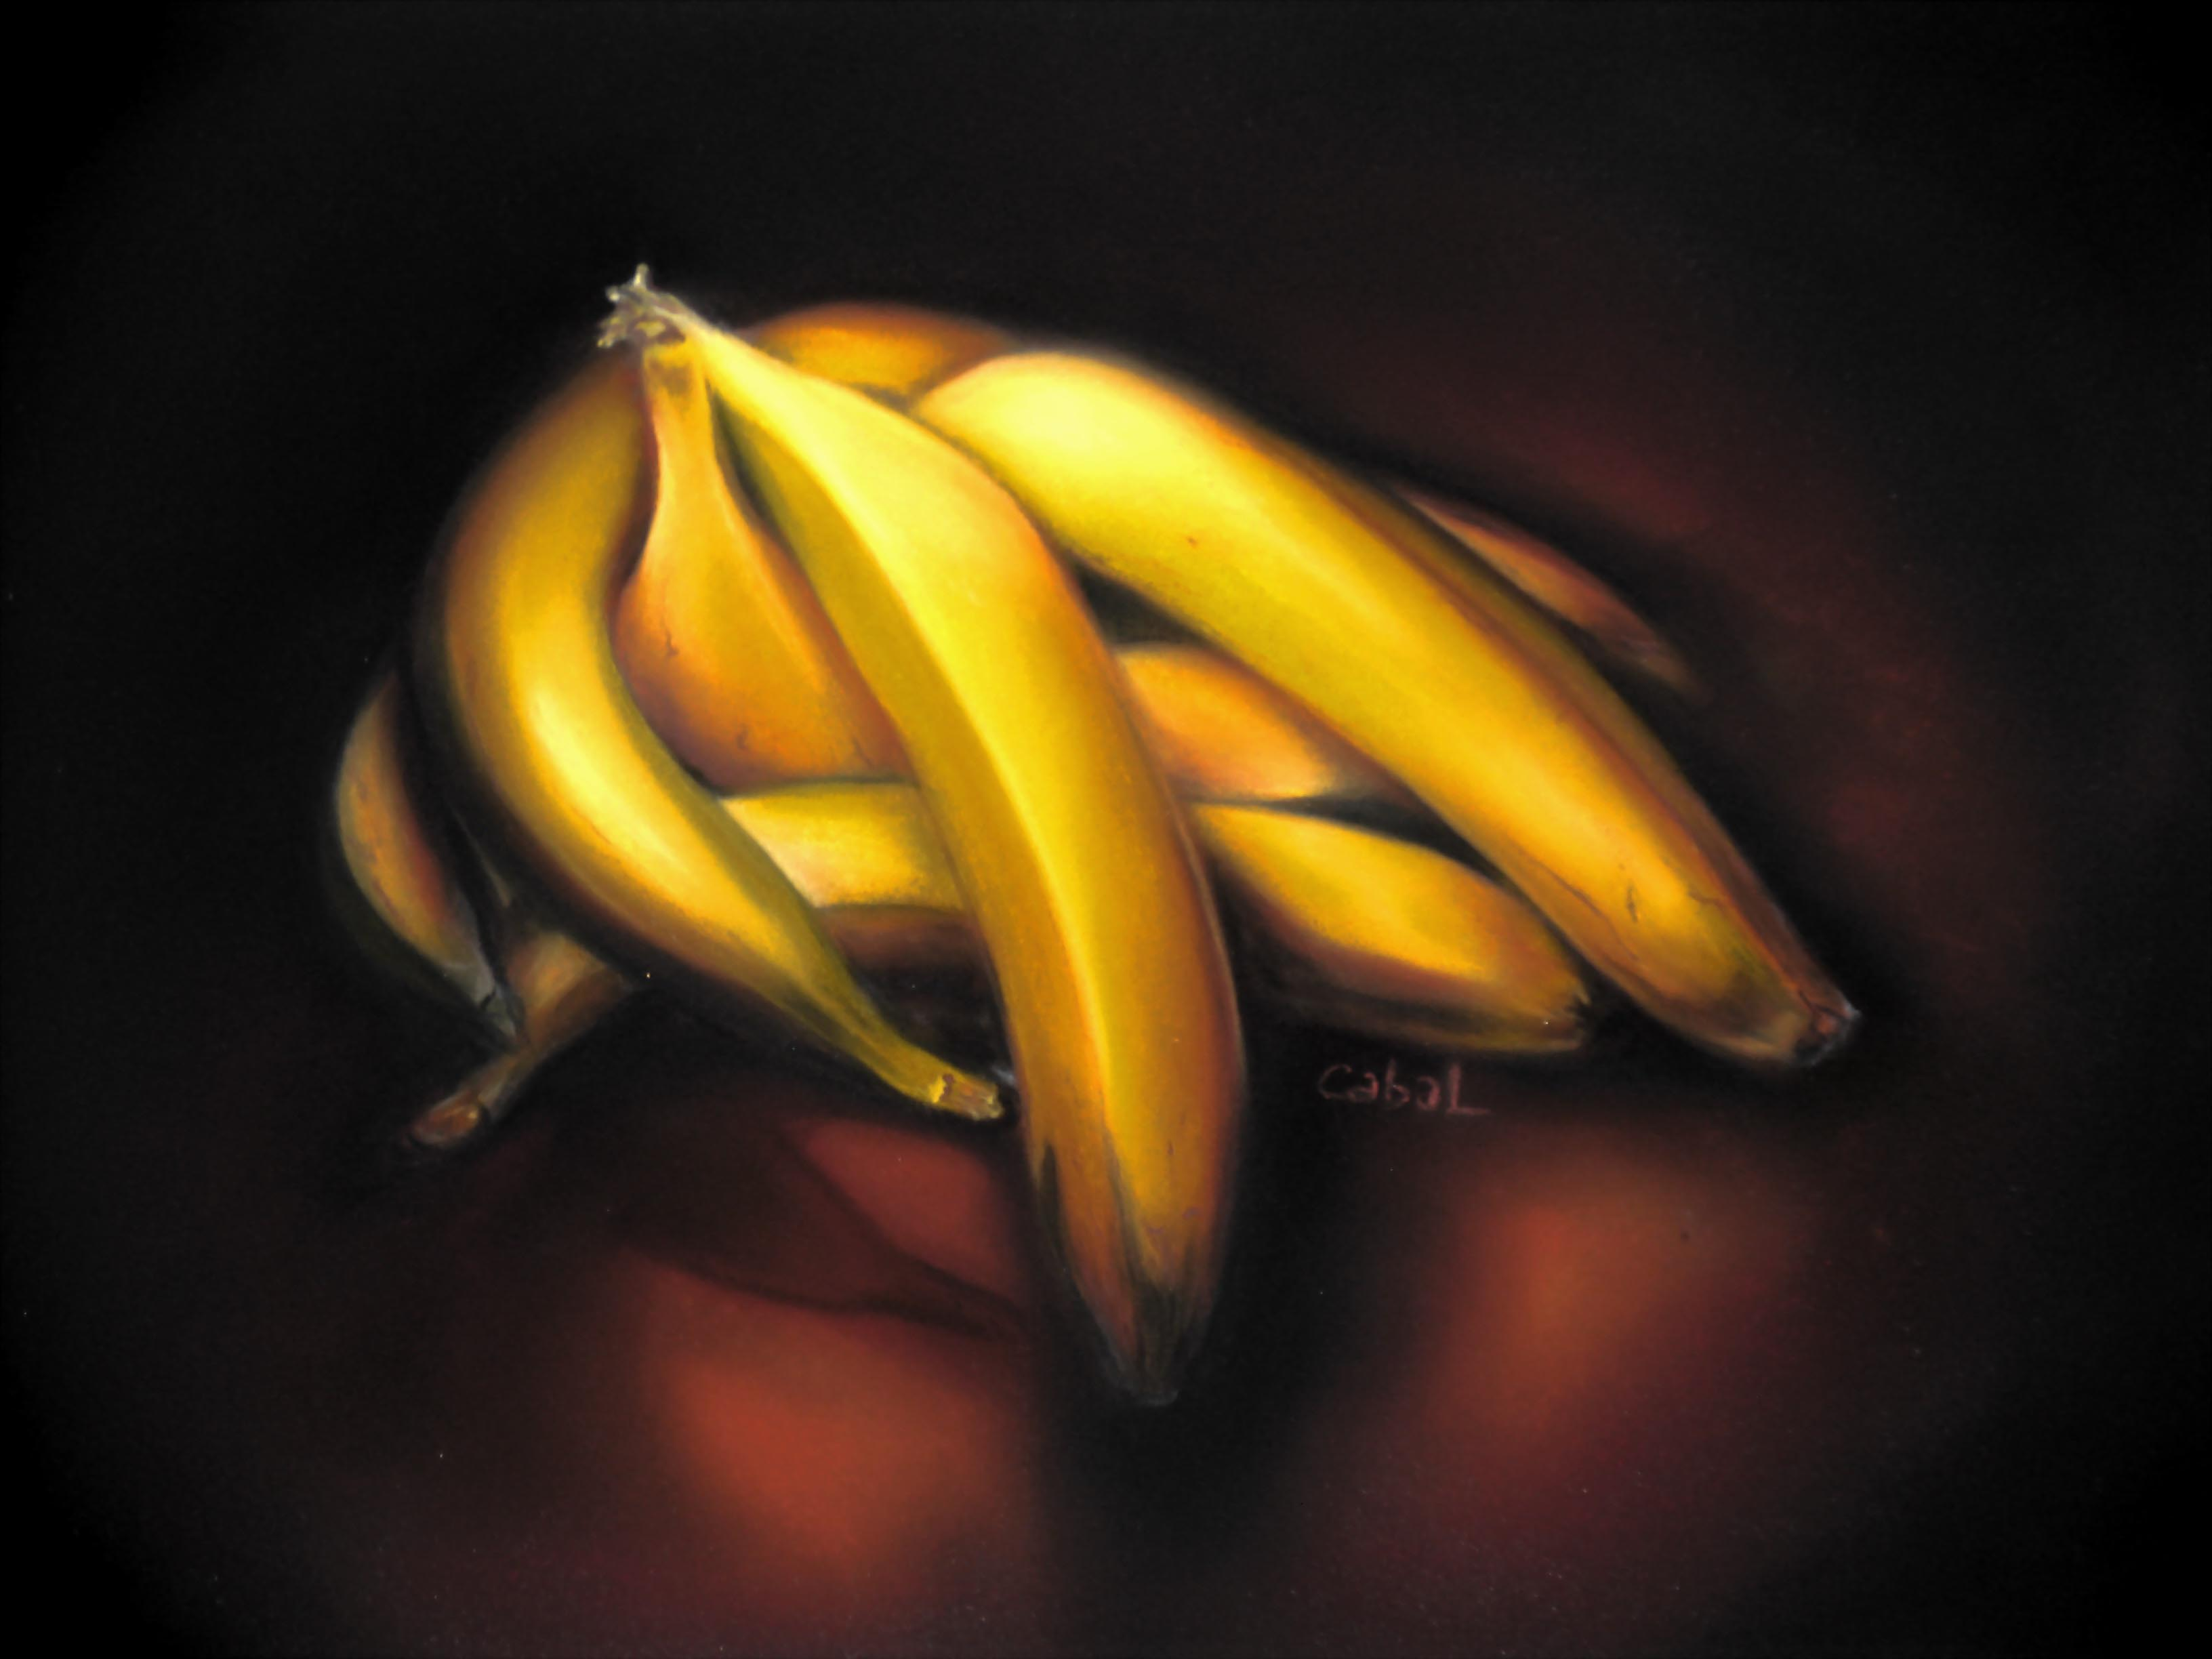 BANANAS IN CLAIR OBSCURE